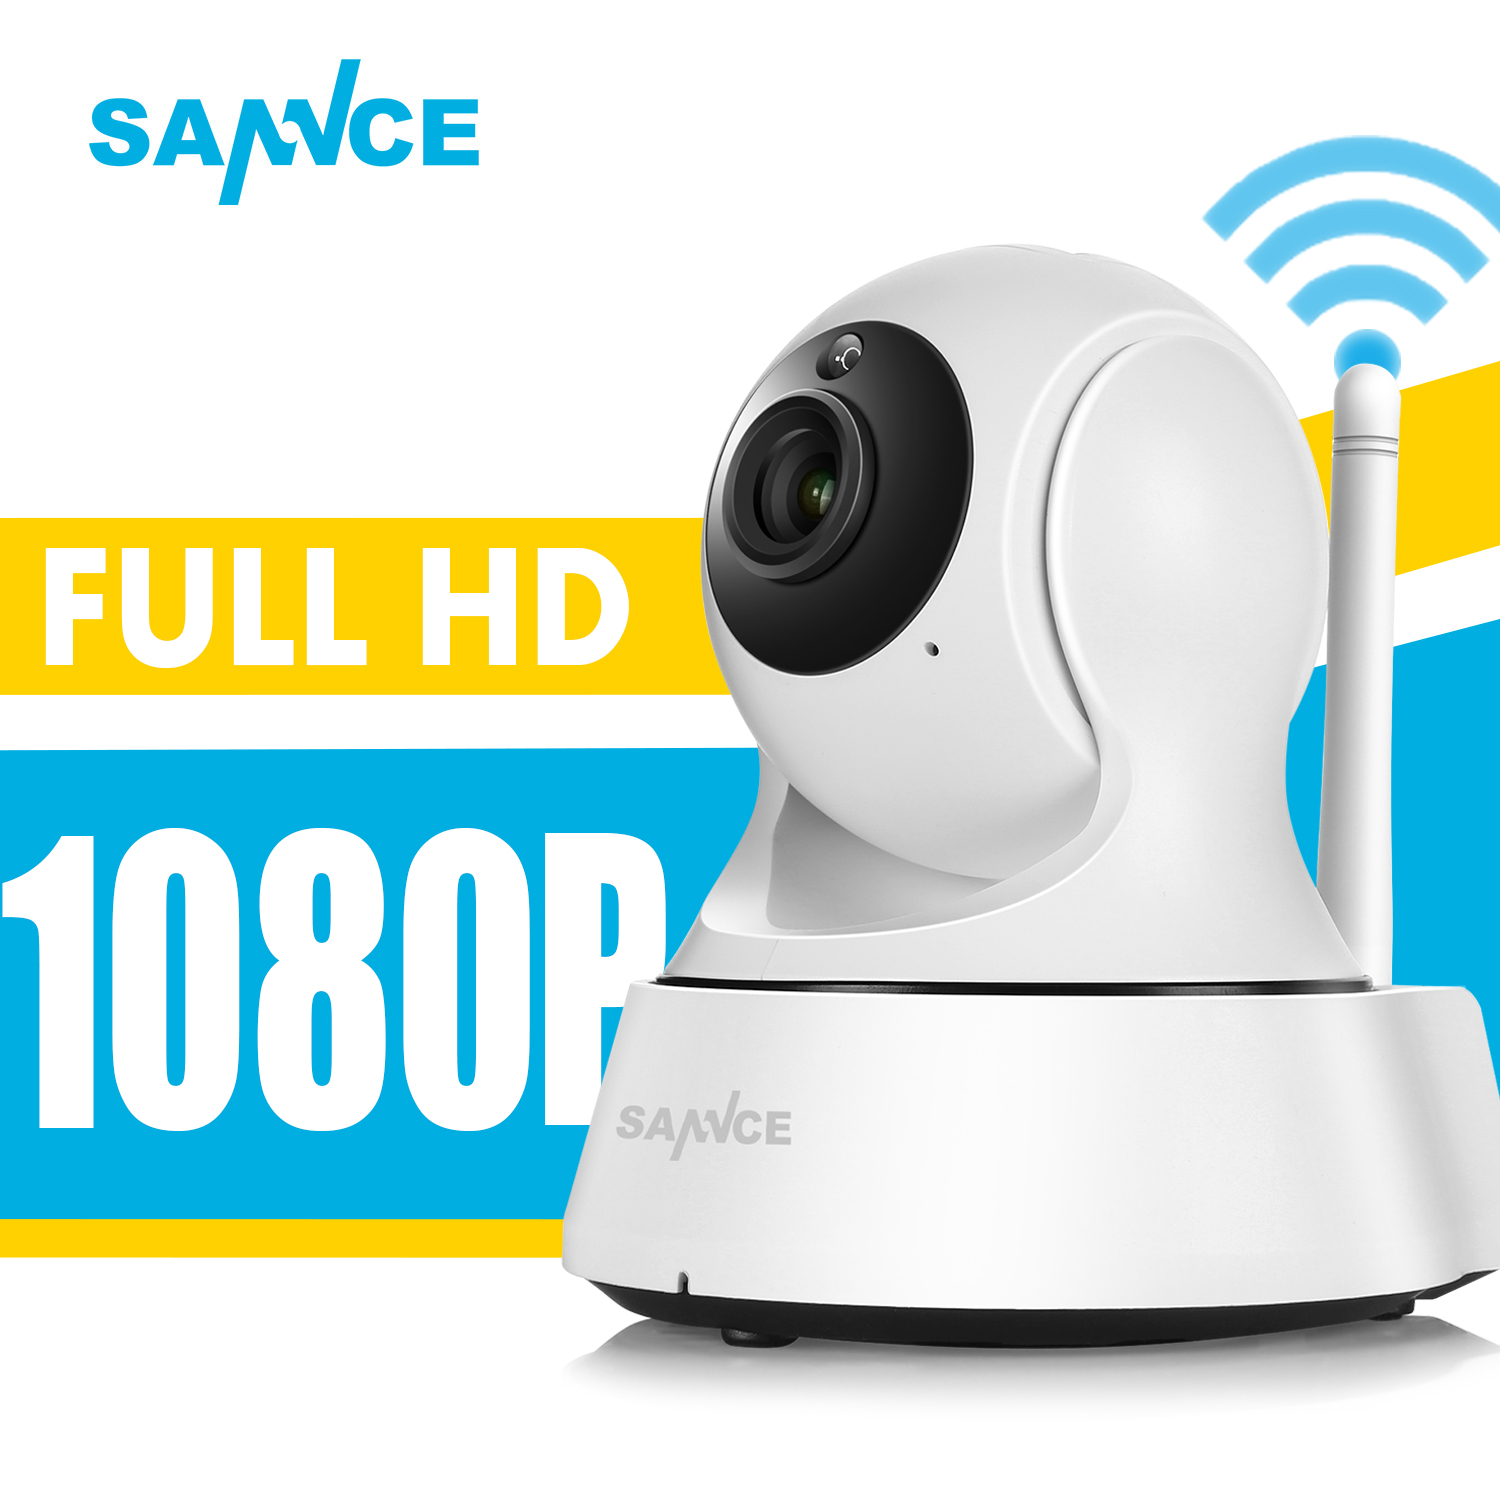 SANNCE Full HD 1080P Mini Wi-fi Camera Wireless IP Sucurity CCTV Camera Wifi Network Smart Night Vision Baby Monitor 1080p full hd mini pocket ip camera ir night vision alarm wifi camera sound and image synchronous phone app monitor wi fi camera